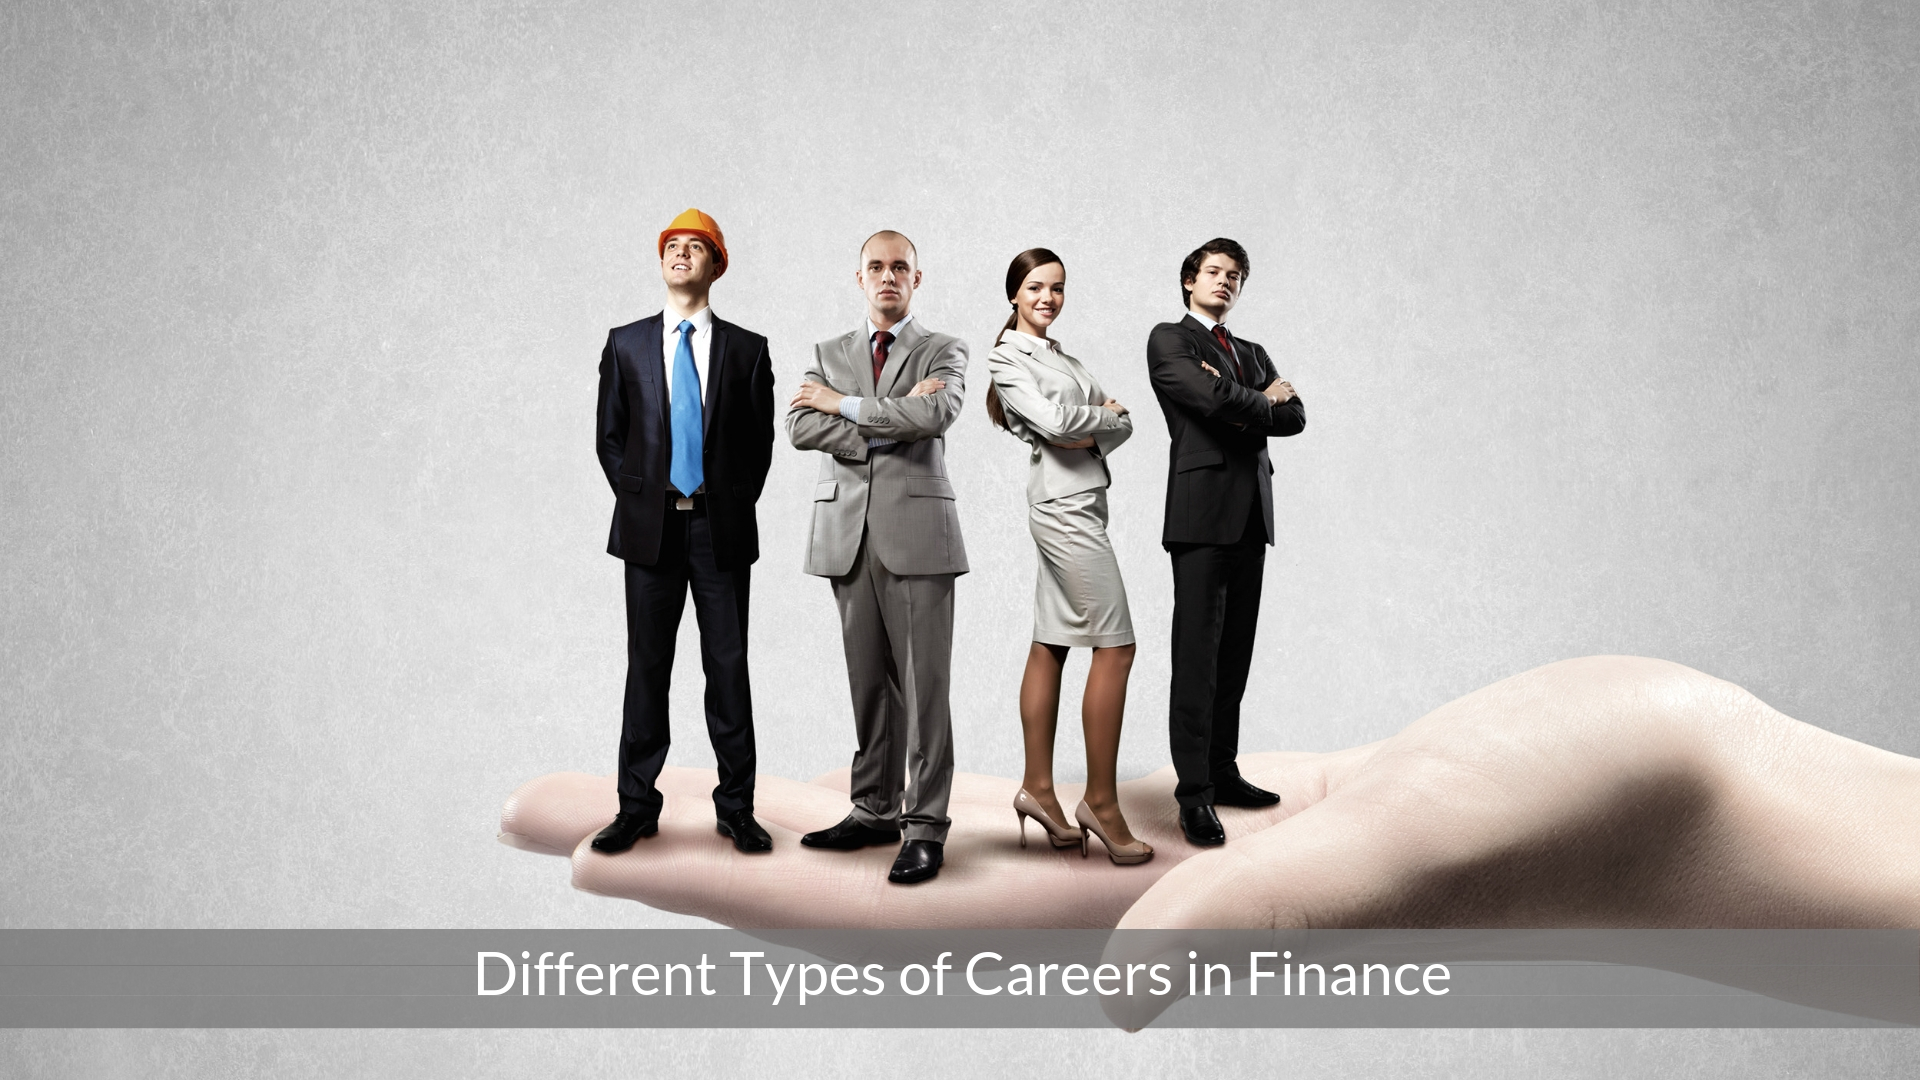 Different Types of Careers in the Finance Industry